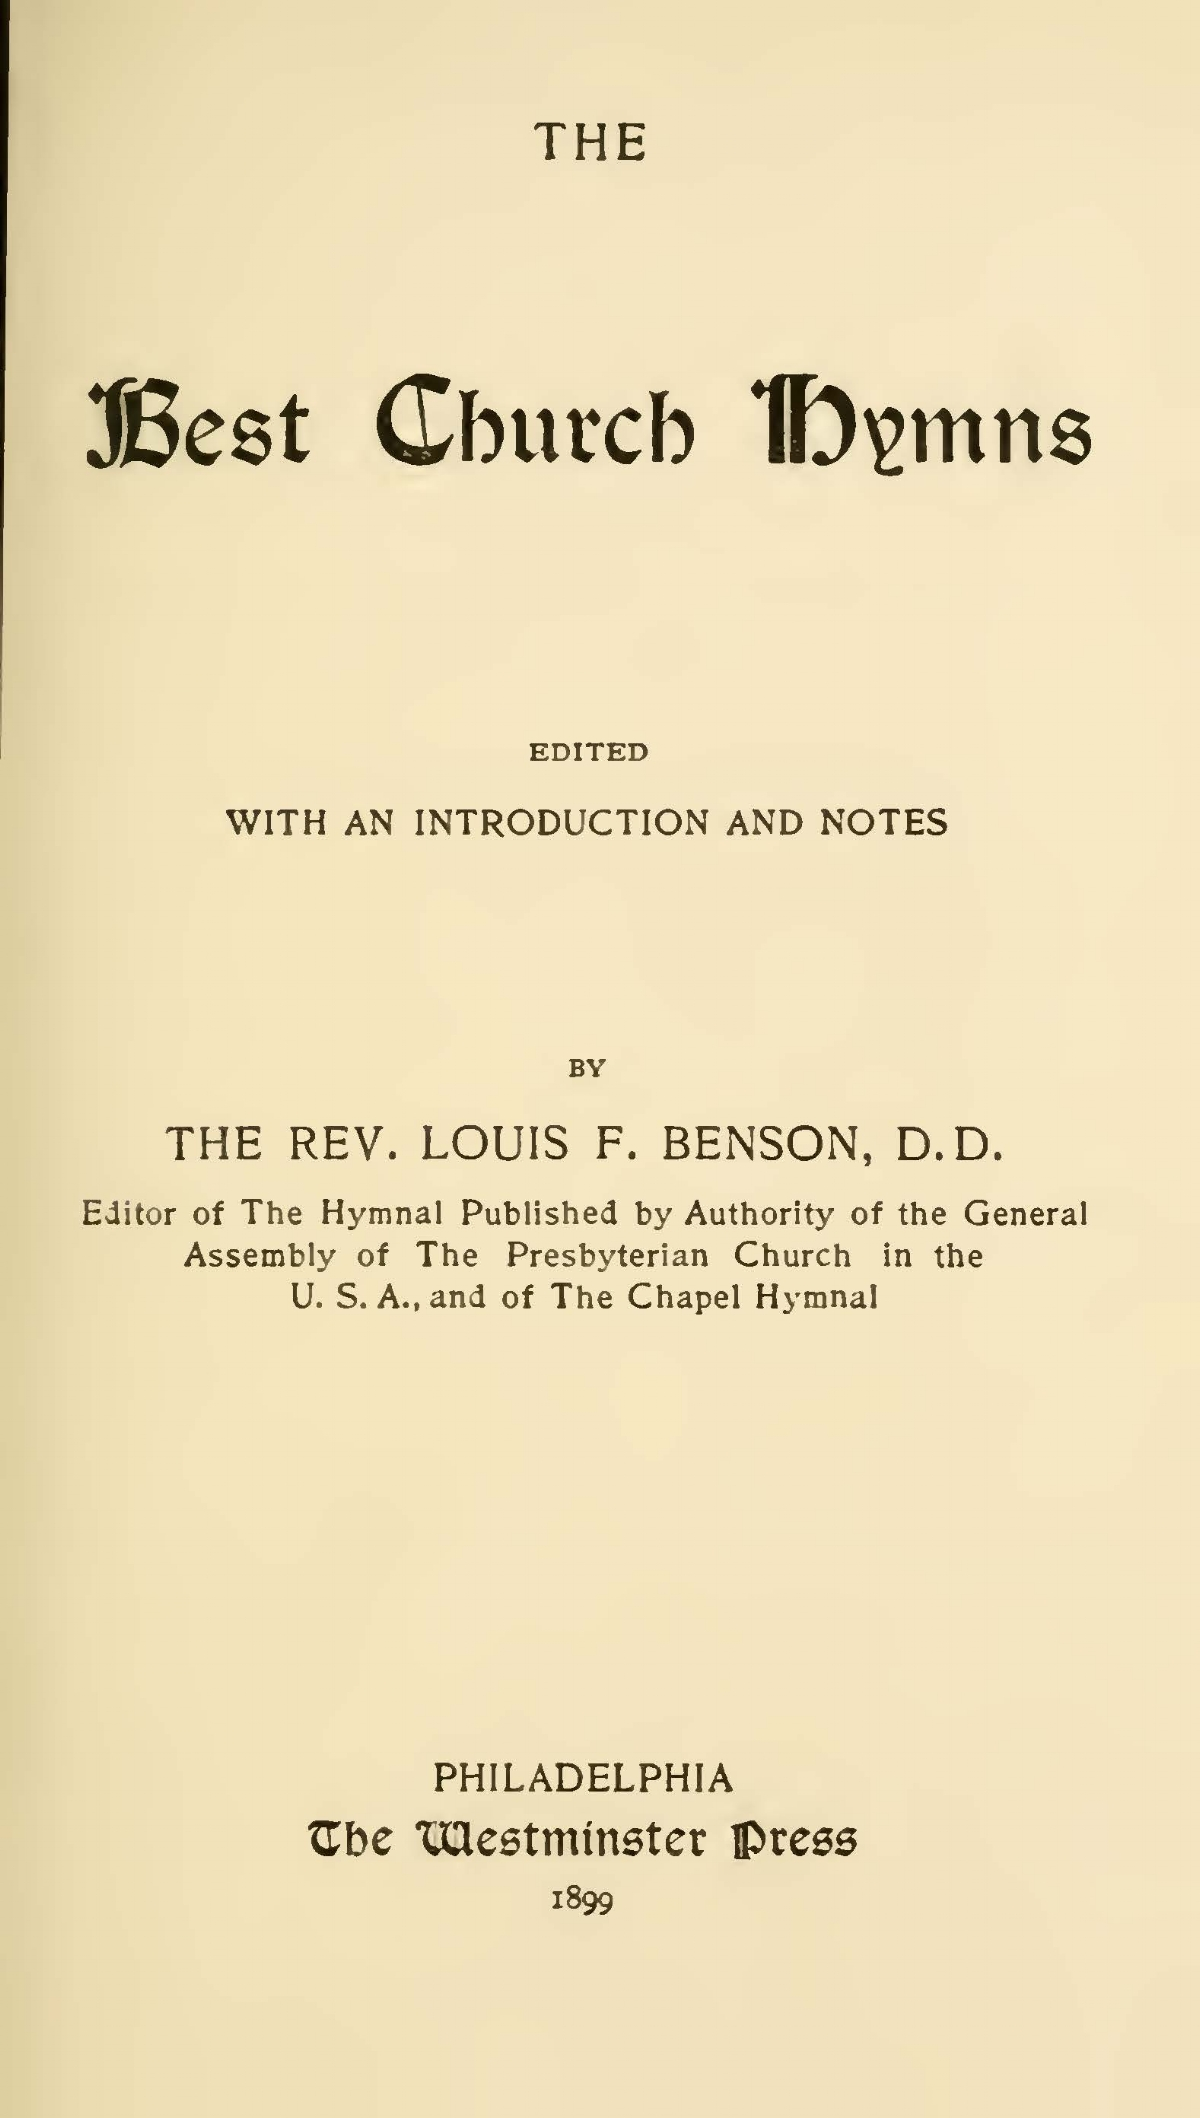 Benson, Louis FitzGerald, The Best Church Hymns Title Page.jpg